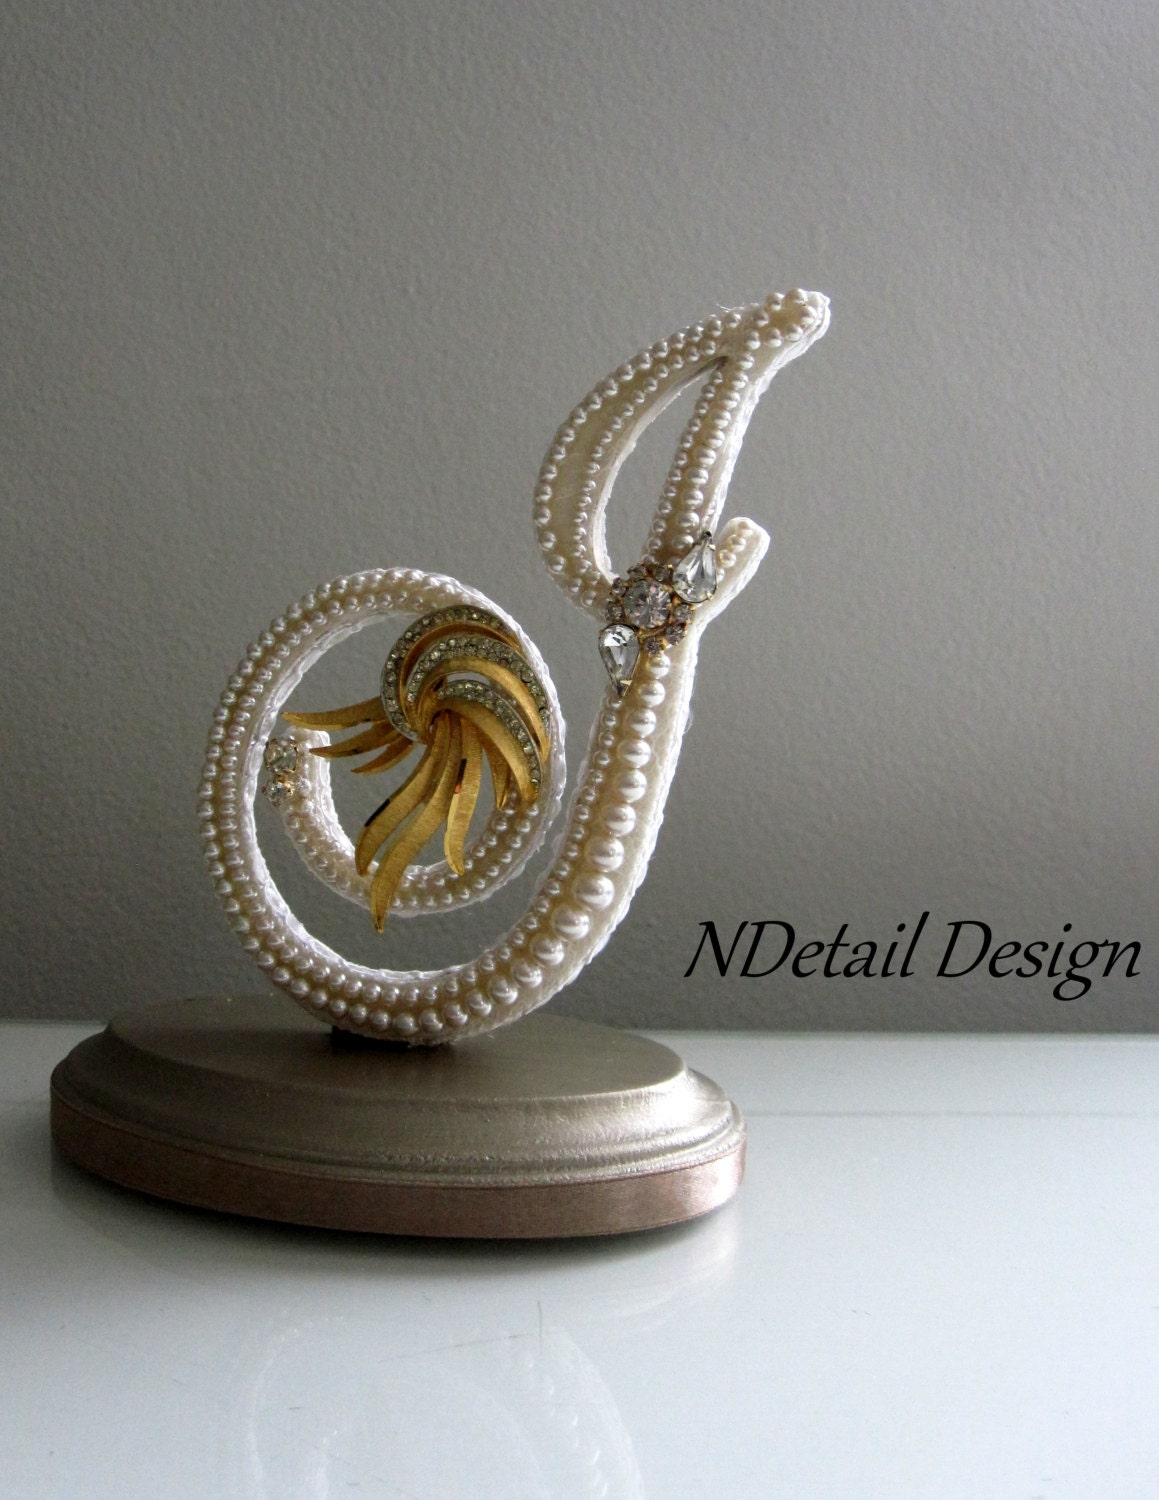 Wedding Cake Topper Monogram Keepsake Custom by NDetailDesign